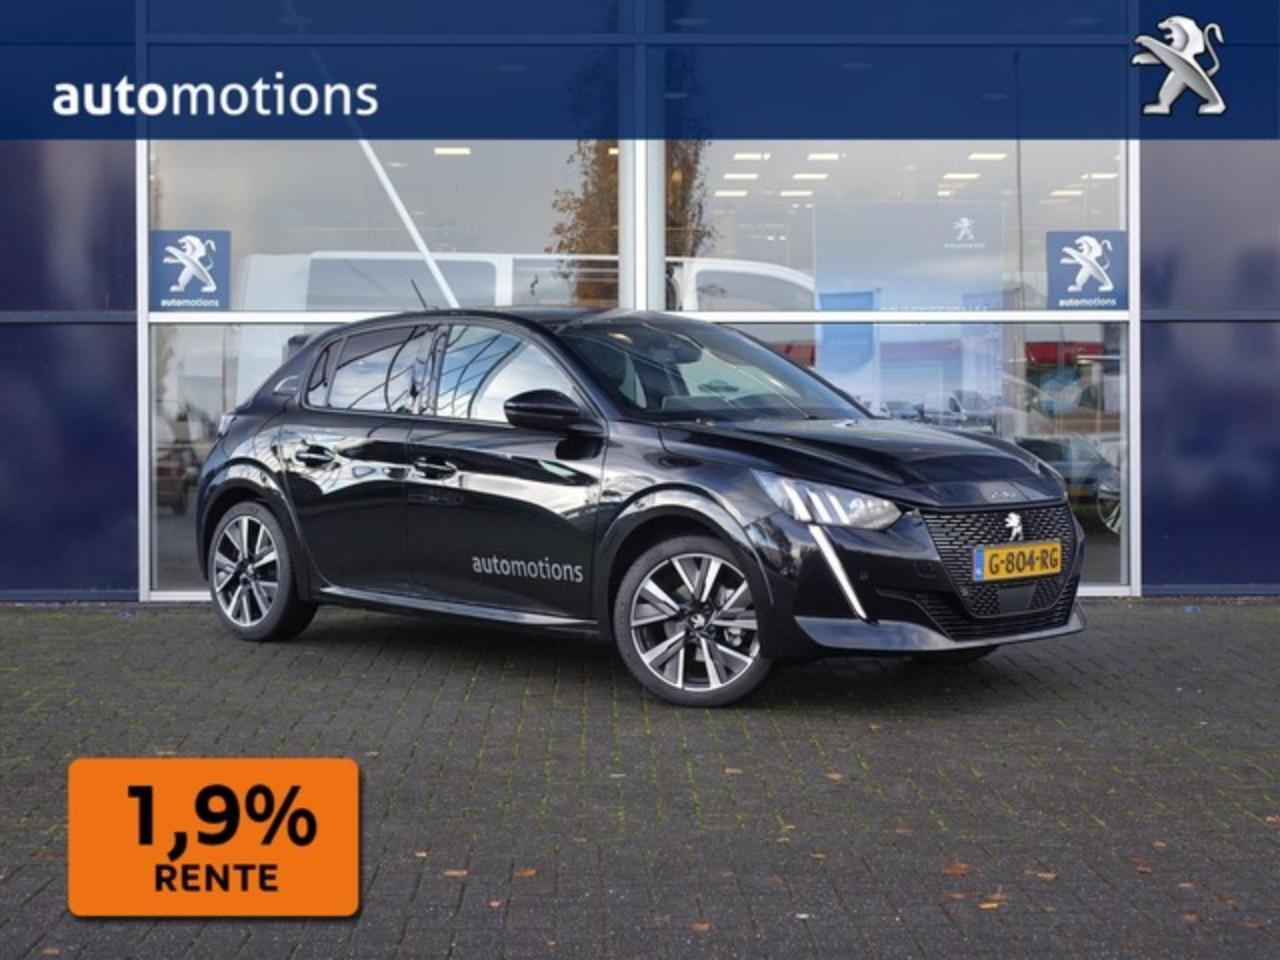 Peugeot 208 New 1.2 130pk l AUTOMAAT l GT-LINE l FULL OPTIONS